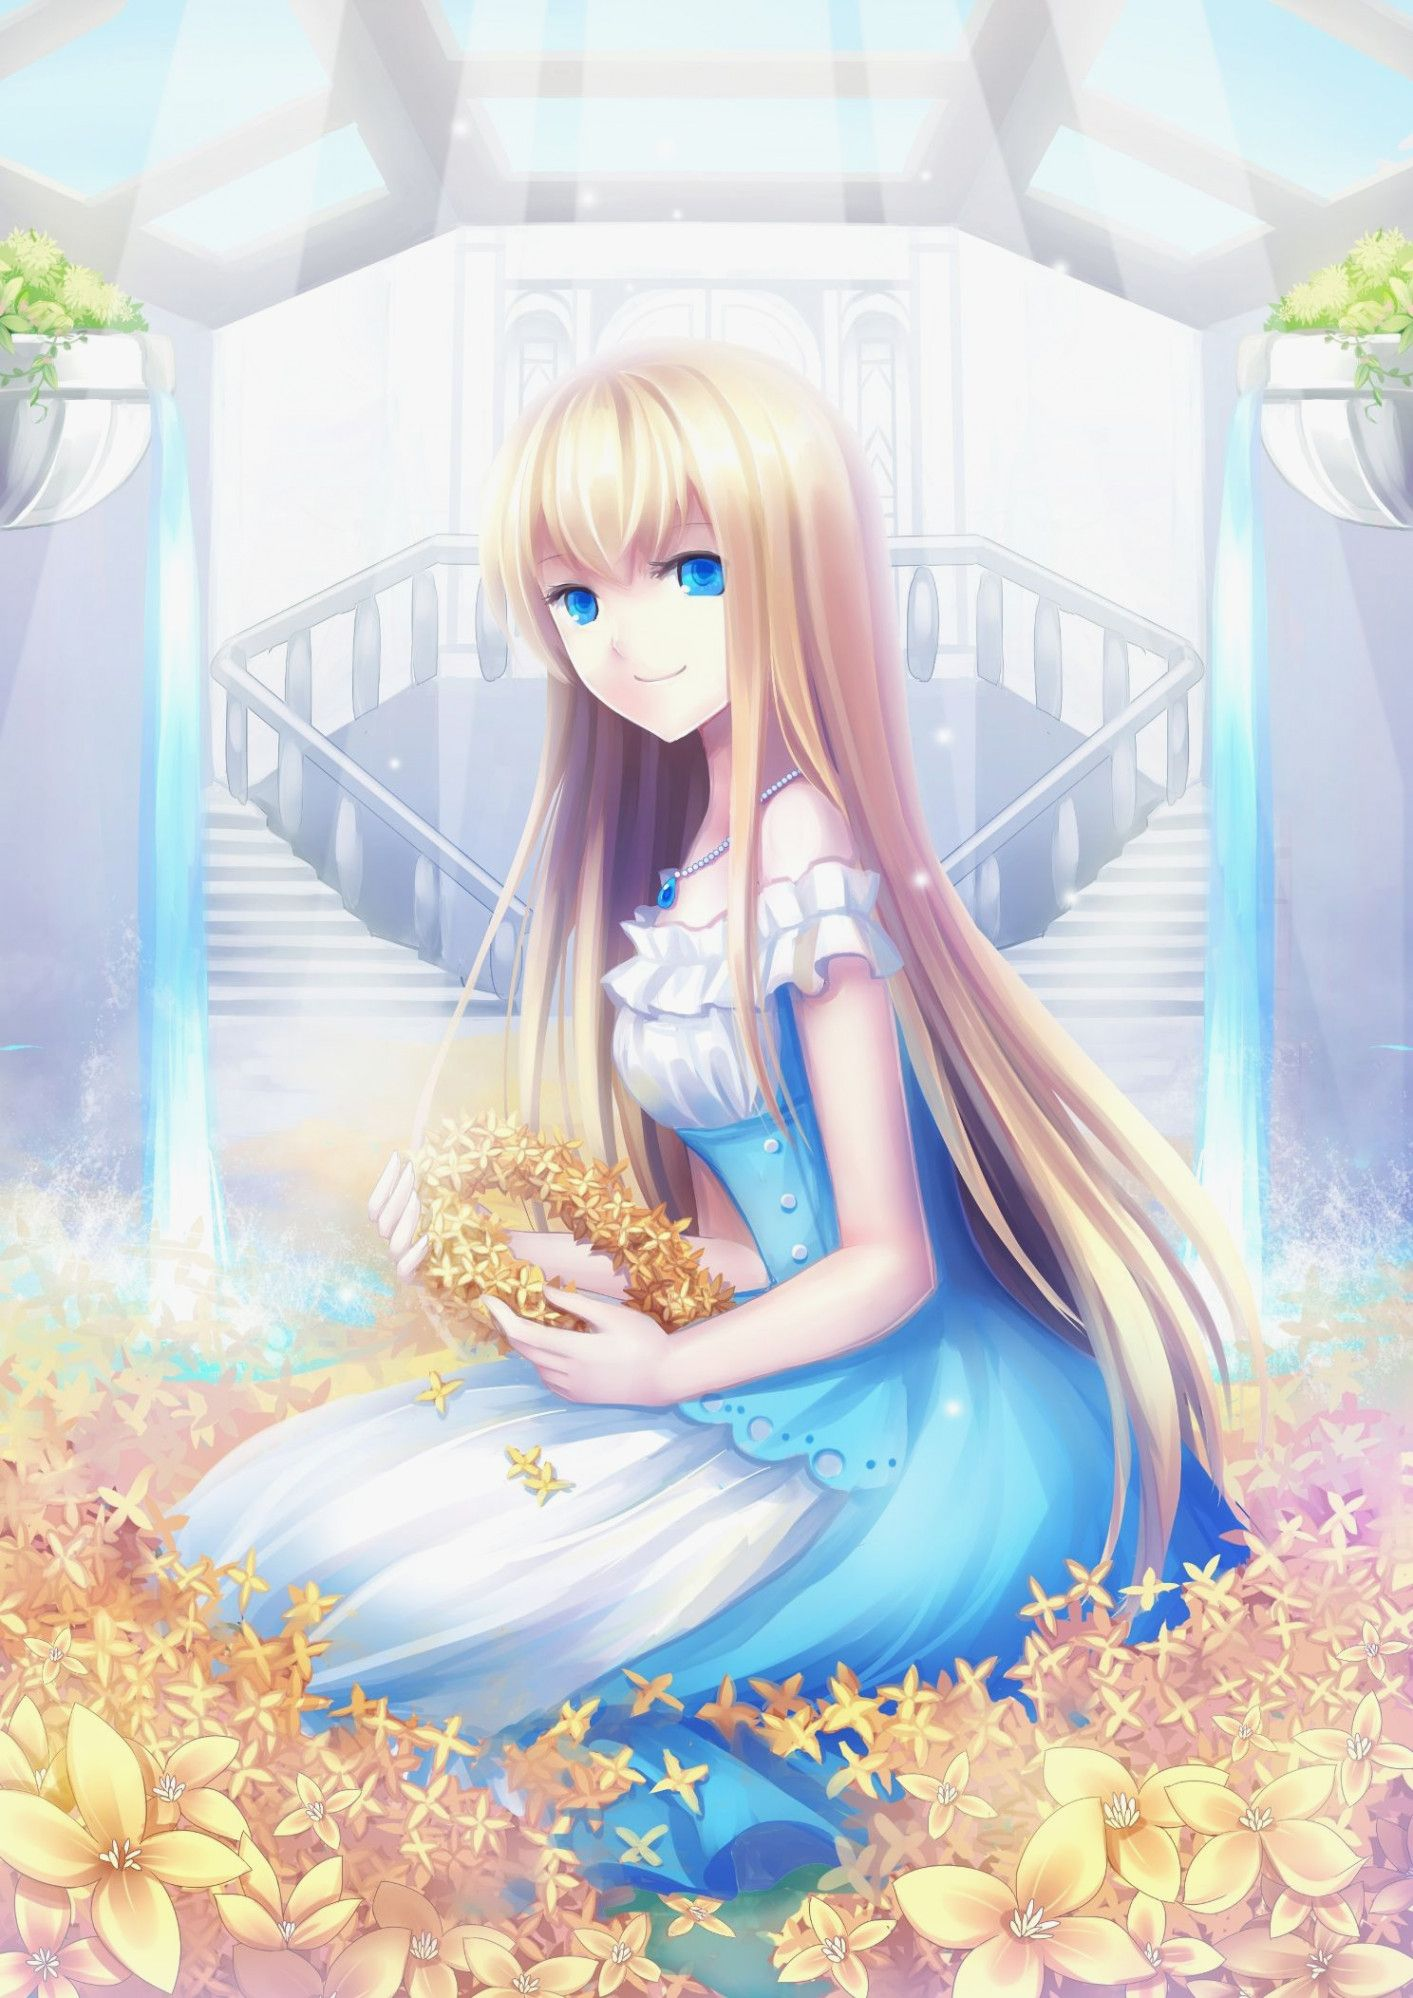 Anime Girl Blond Hair Blue Eyes